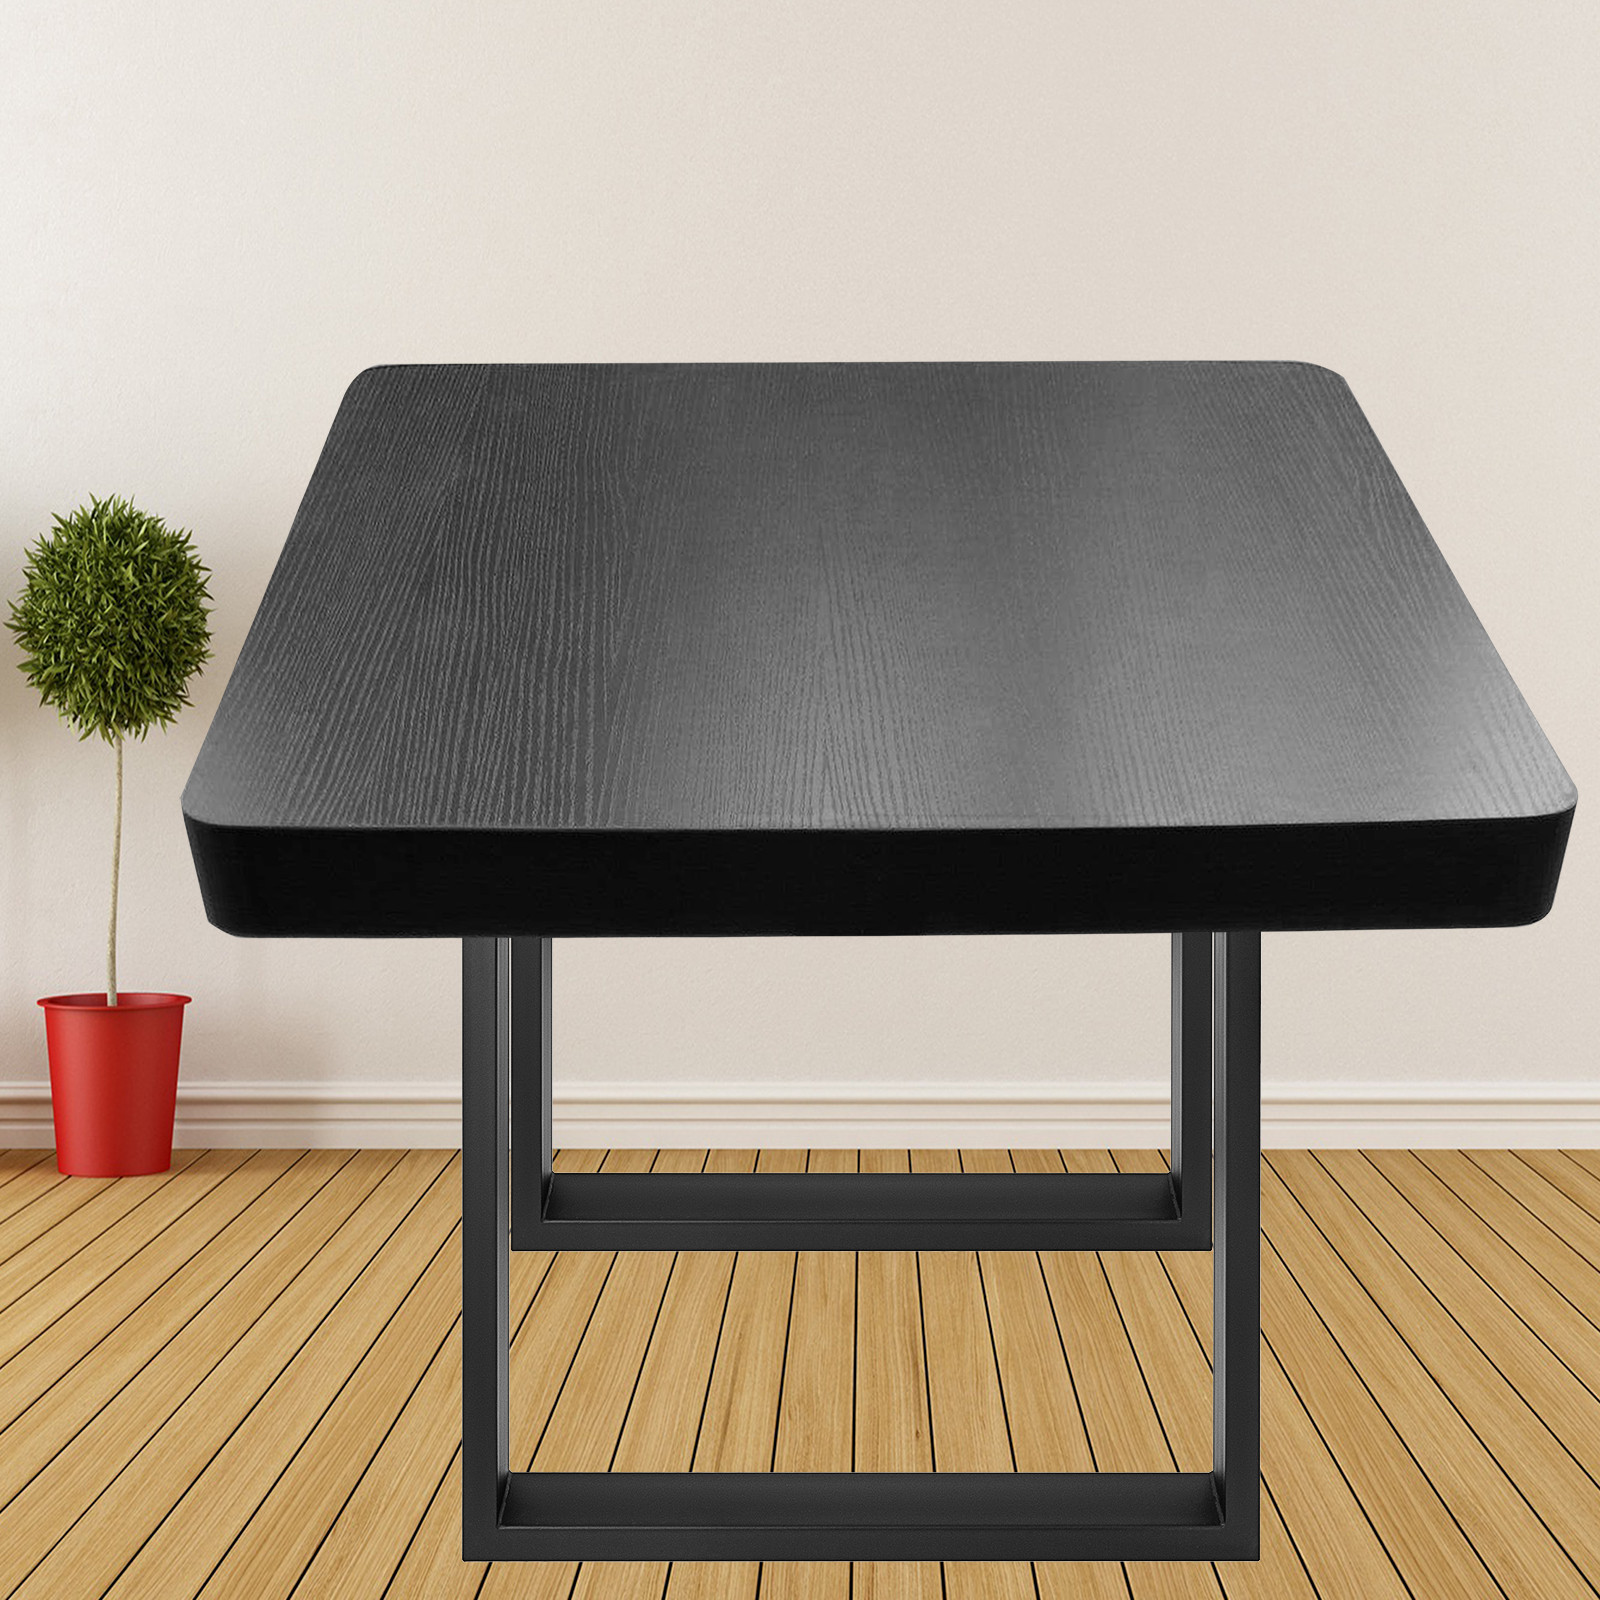 2X-Table-Legs-Black-Dining-Table-Leg-Heavy-Duty-Computer-Desk-Legs-Rectangle thumbnail 23